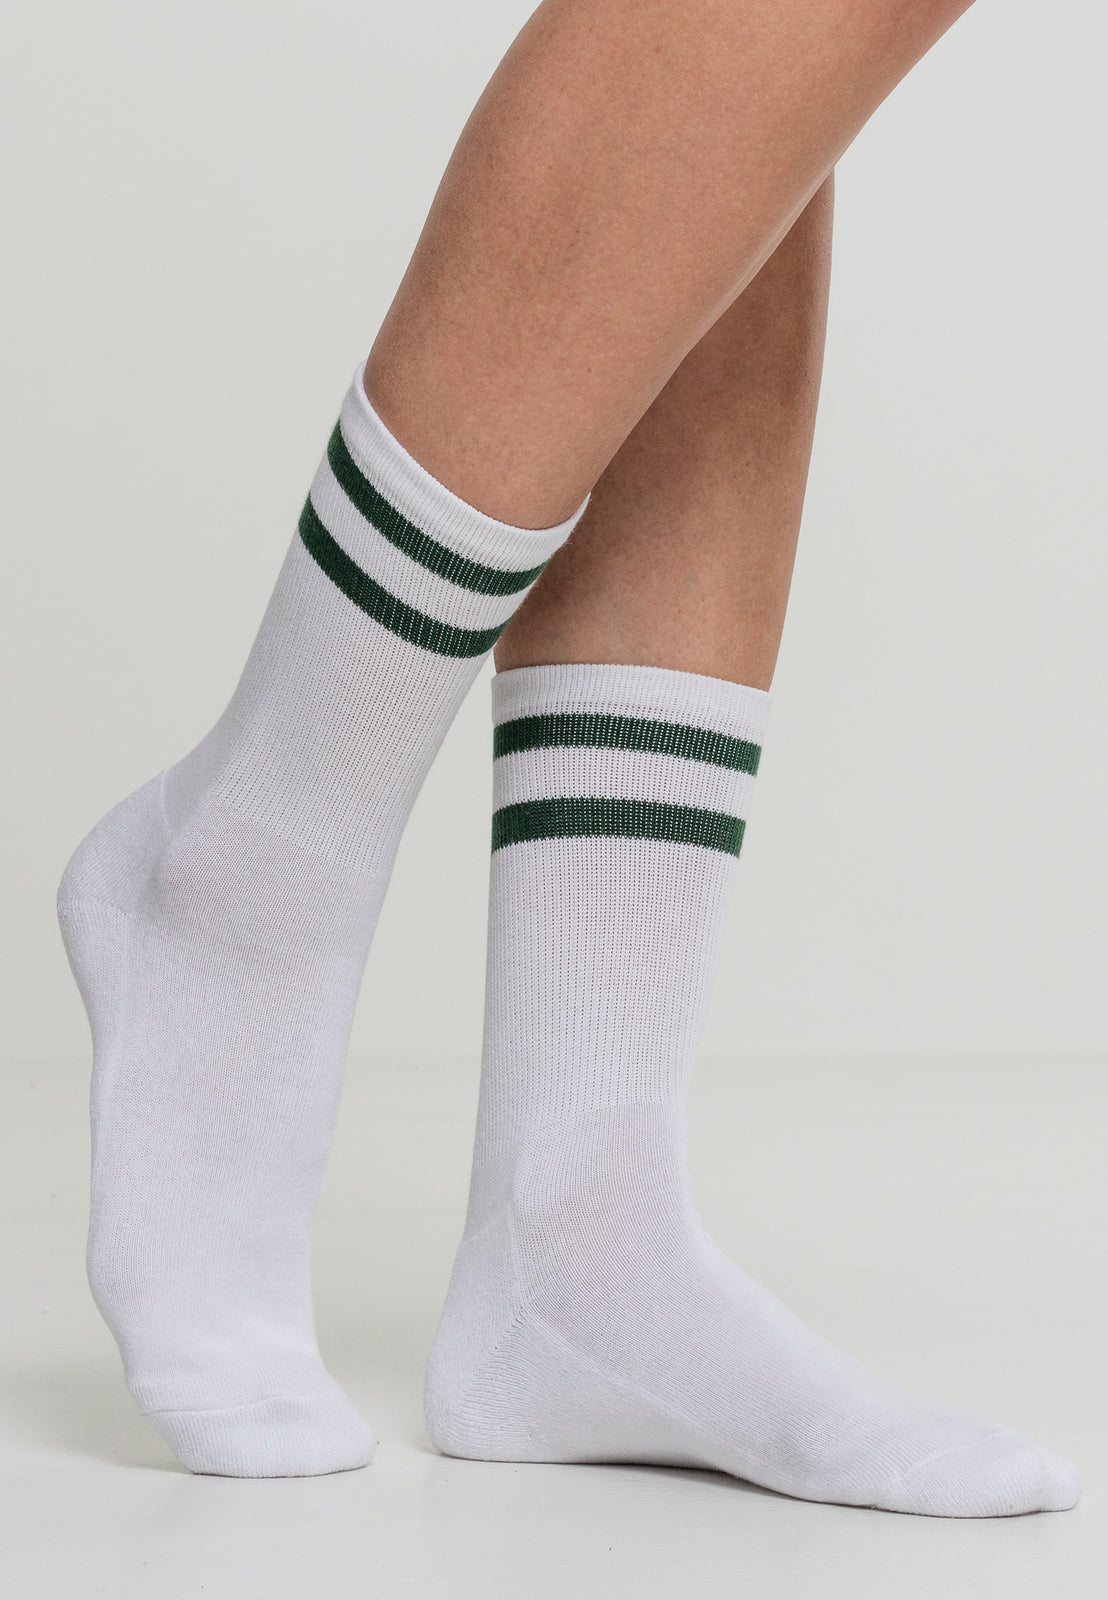 2-Stripe Socks 2-Pack white/green